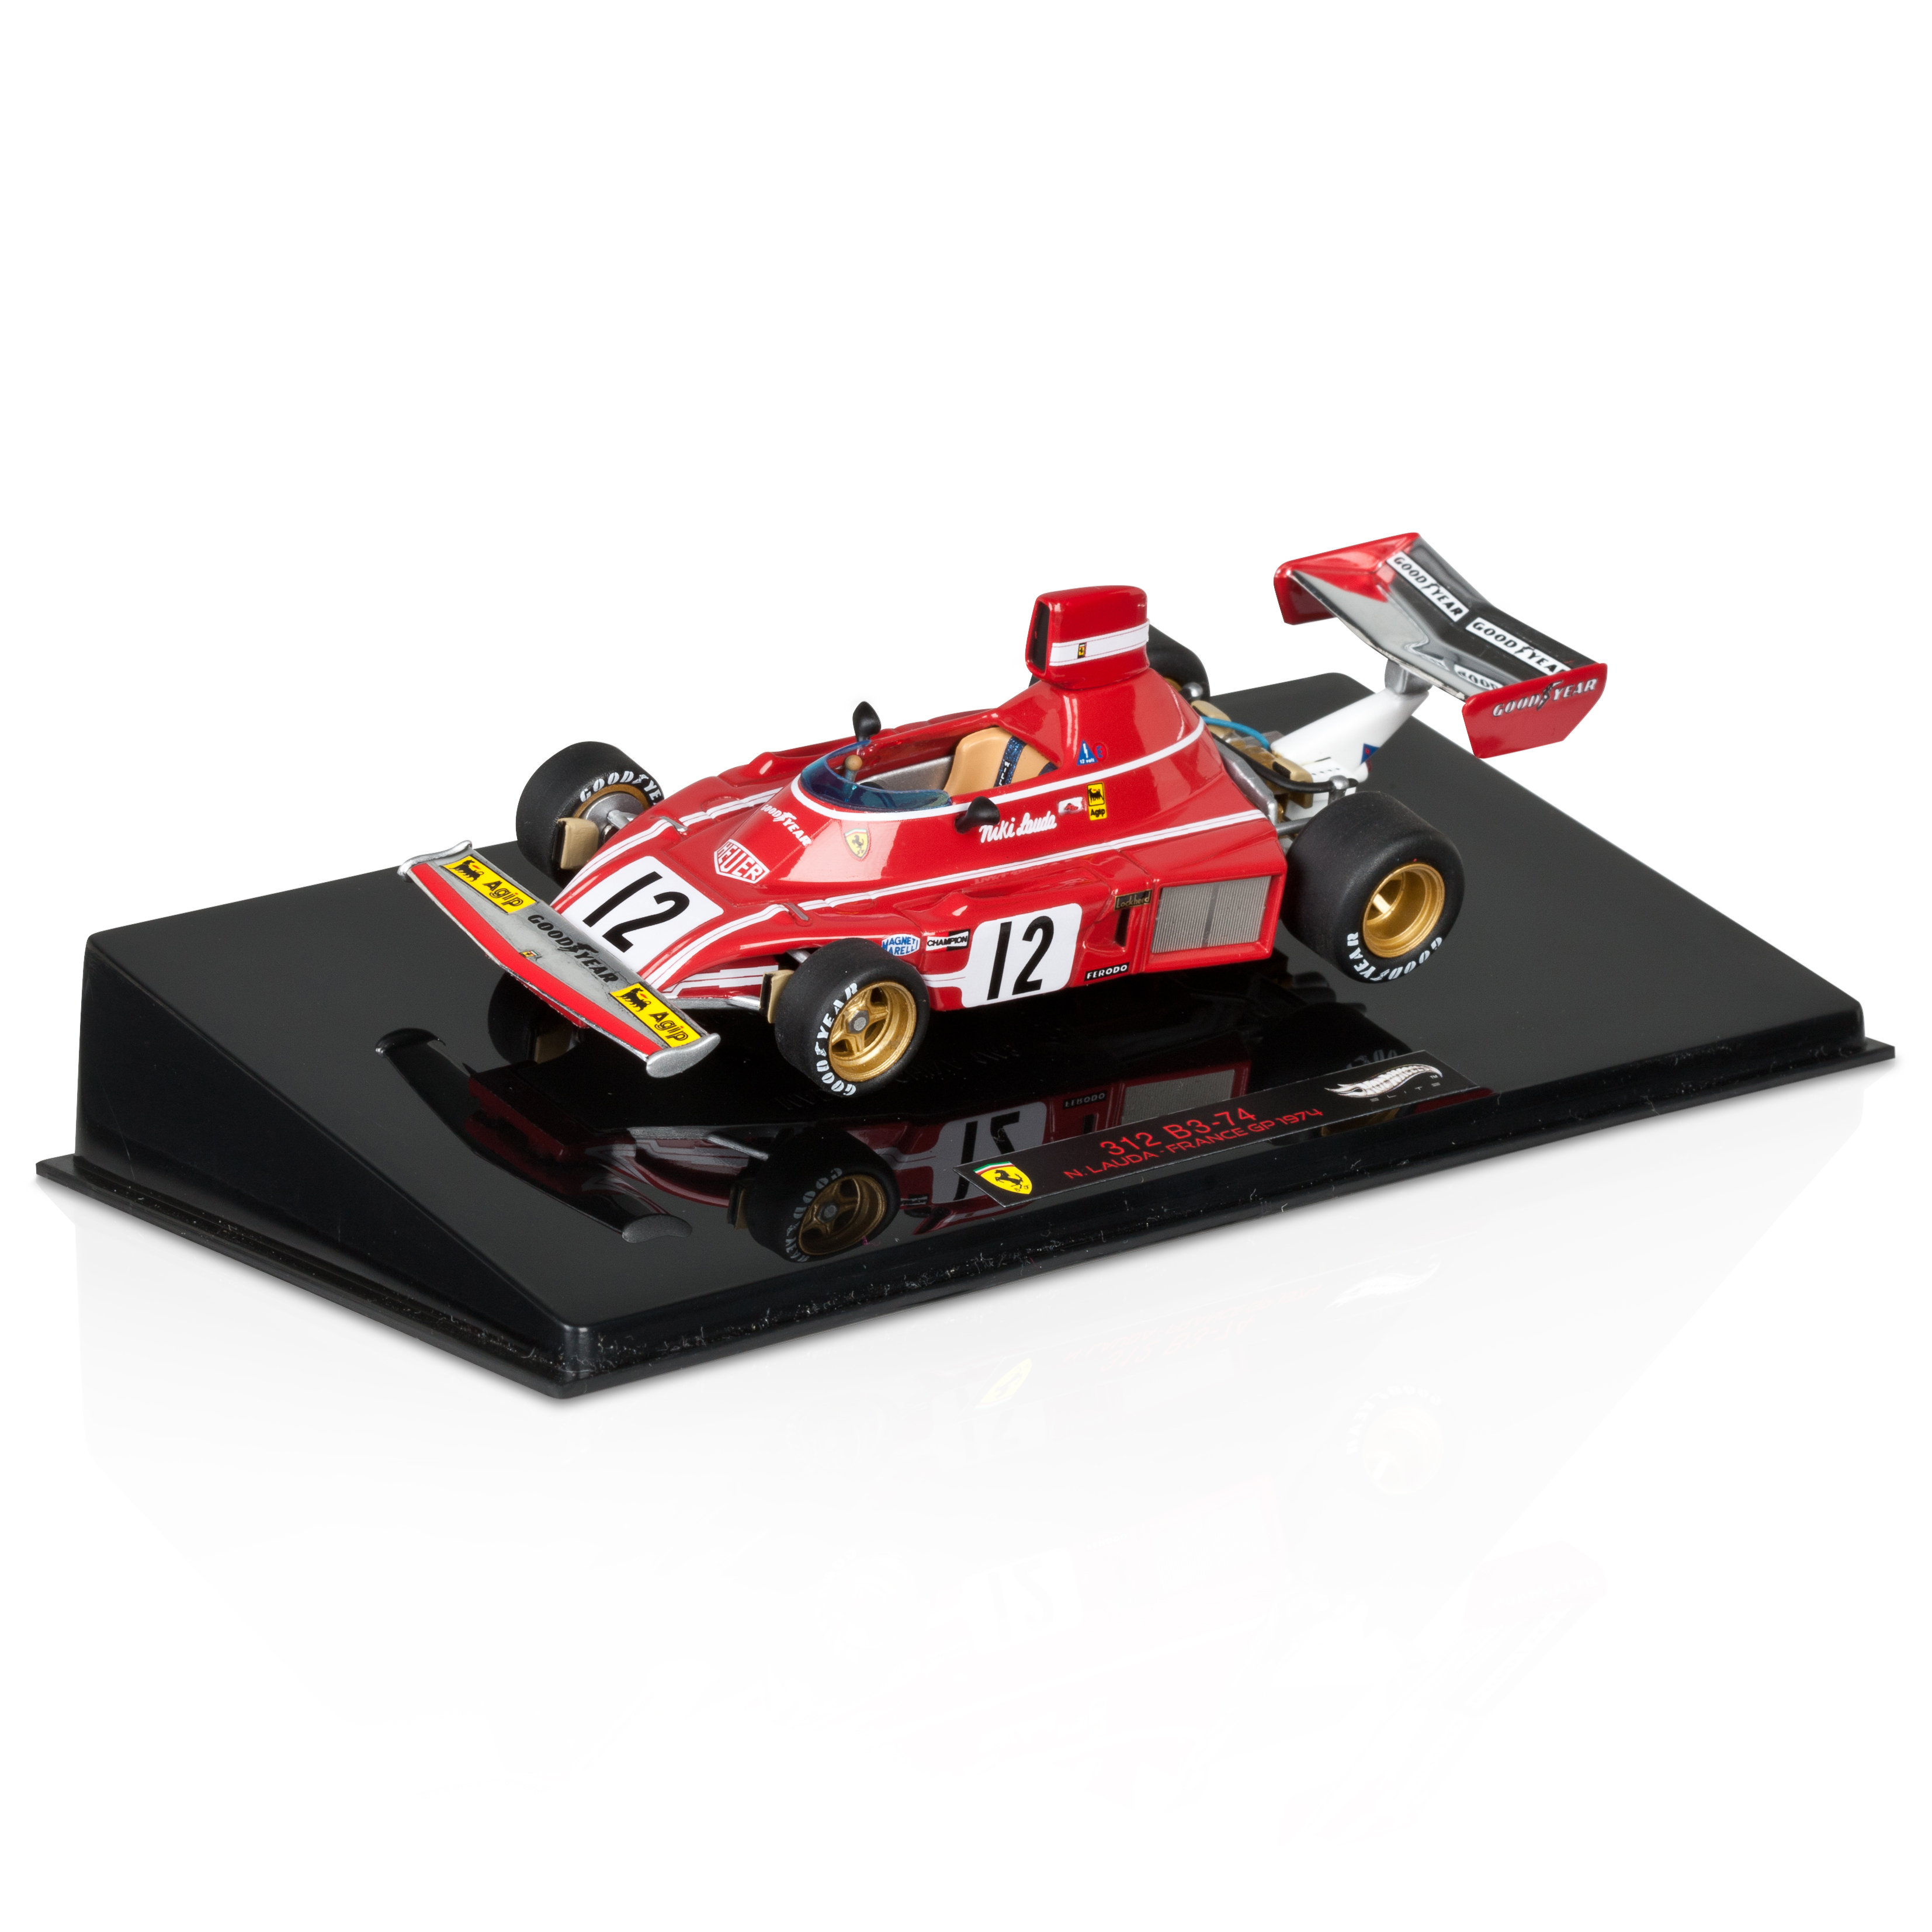 Niki Lauda Ferrari 312B3 French GP 1974 1:43 Scale